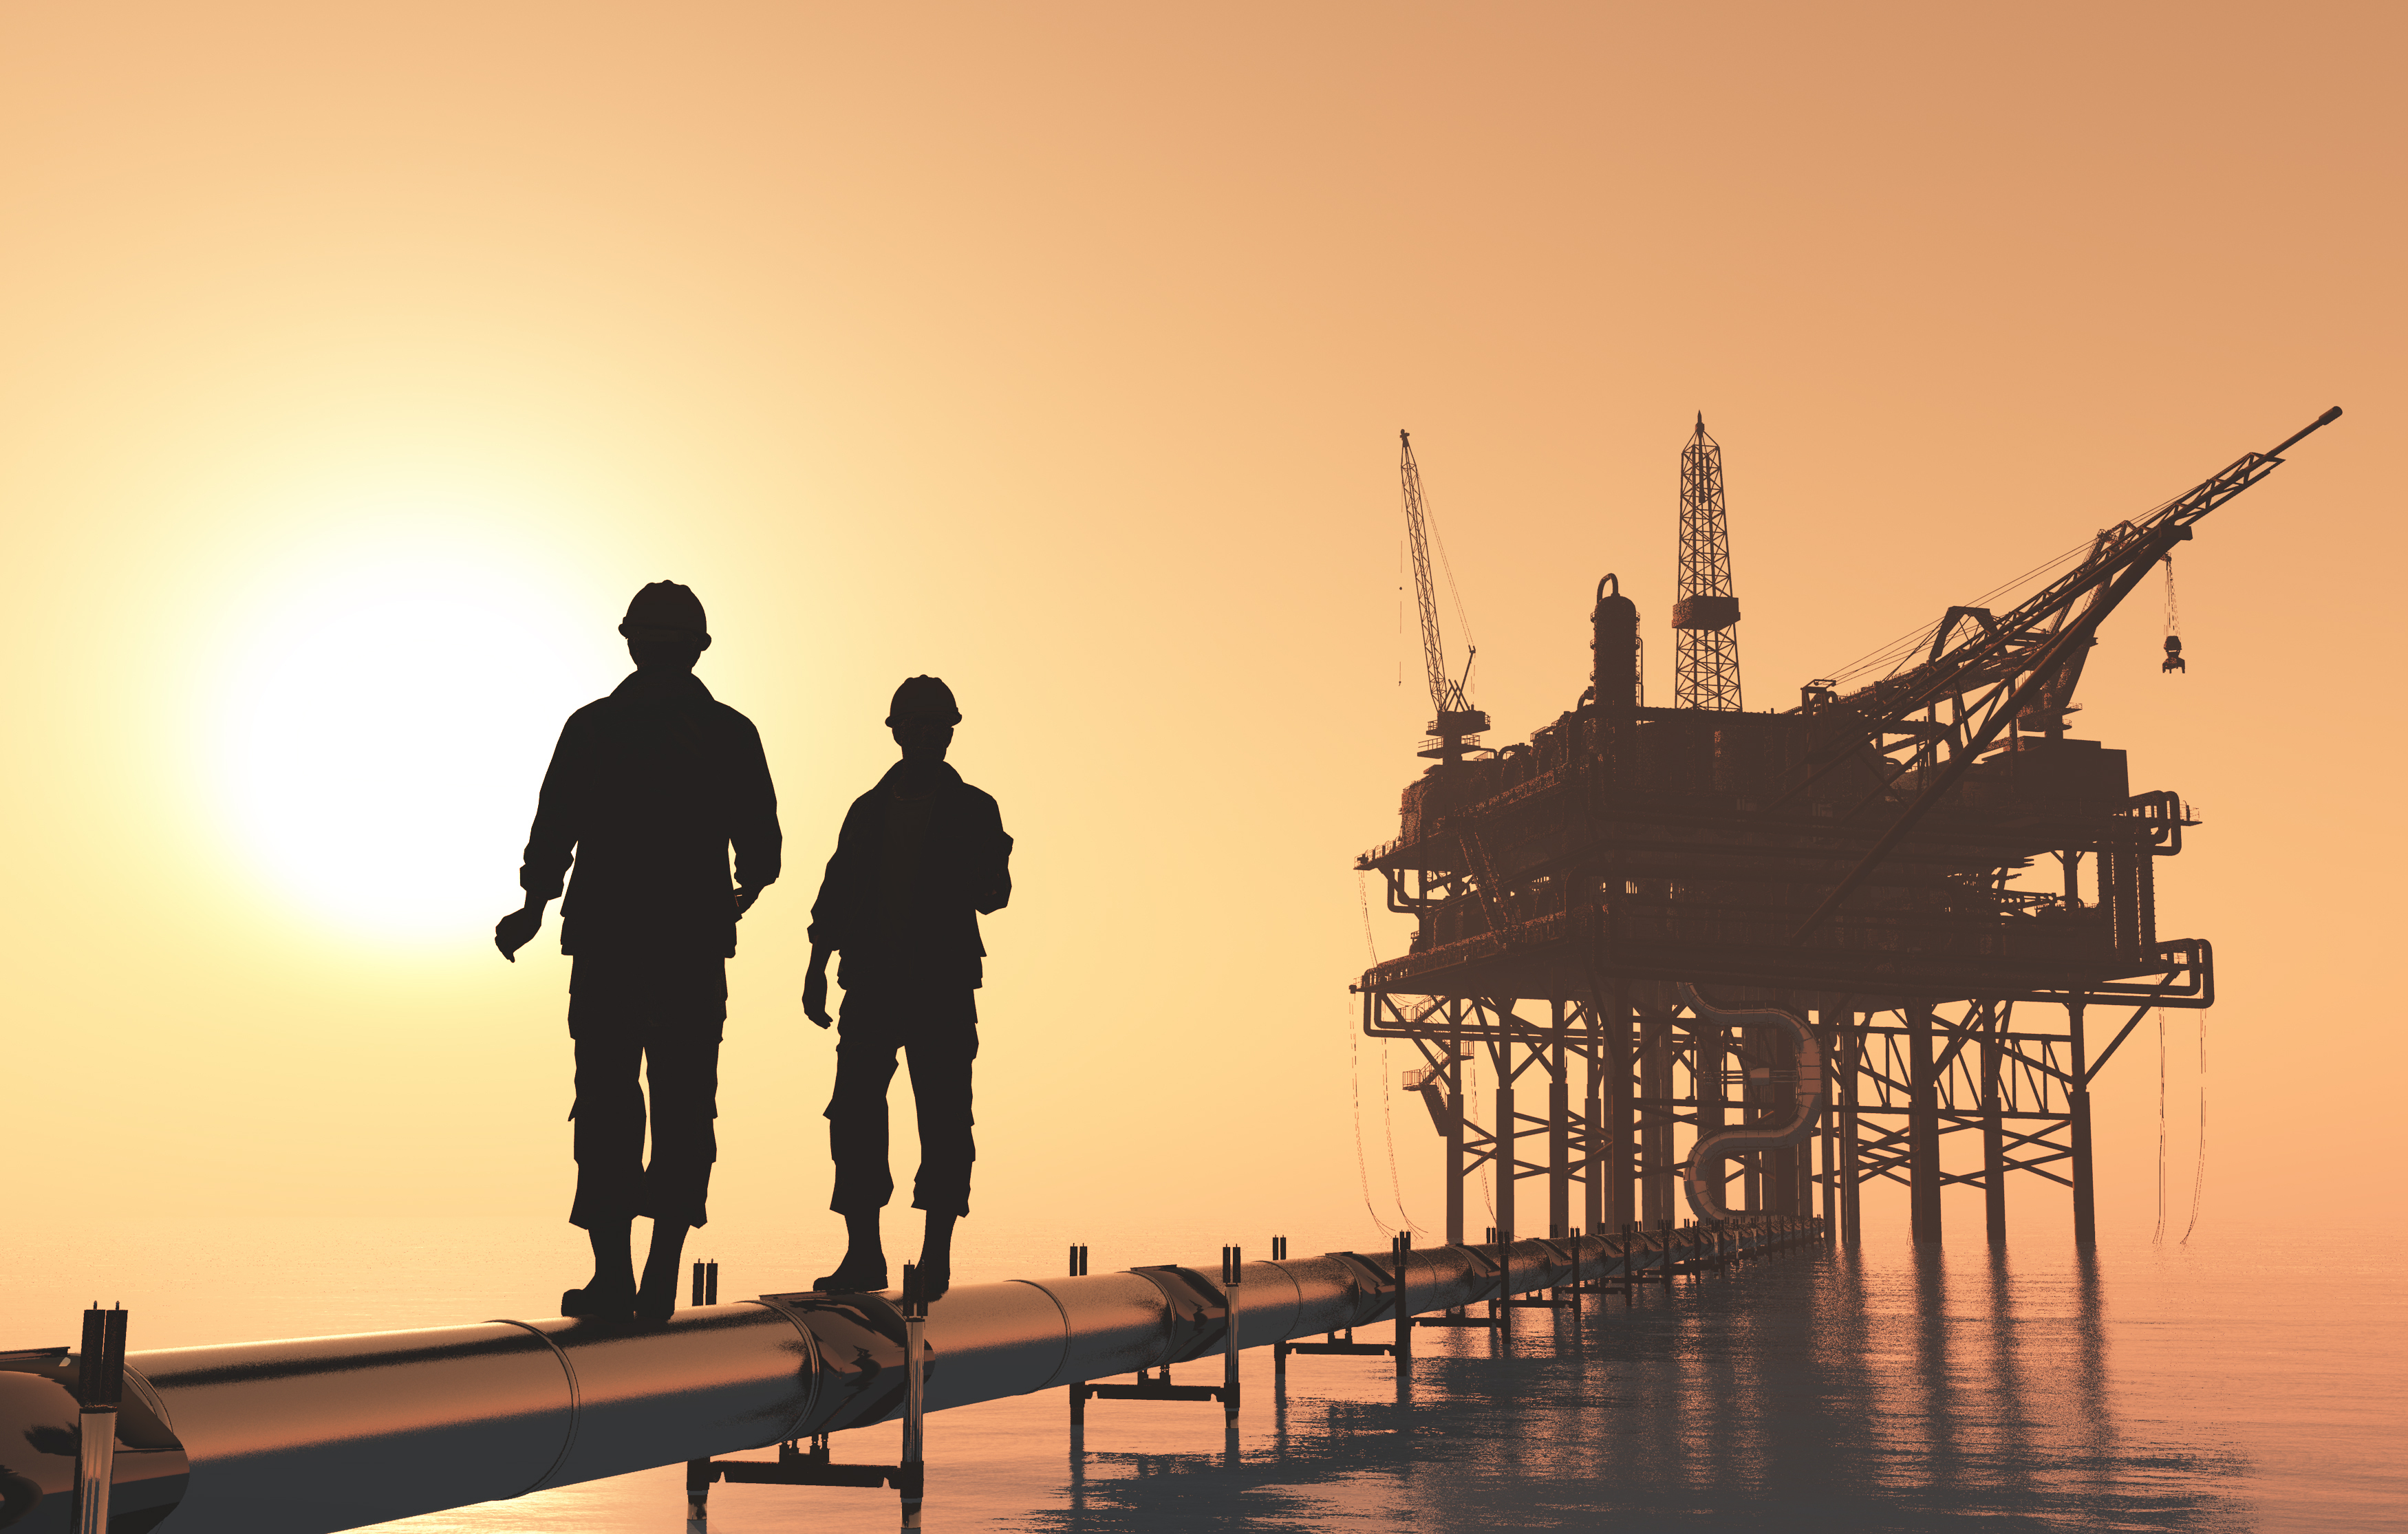 silhouettes of workers wearing hard hats walking on a pipe above water in front of an oil rig with the sun behind them